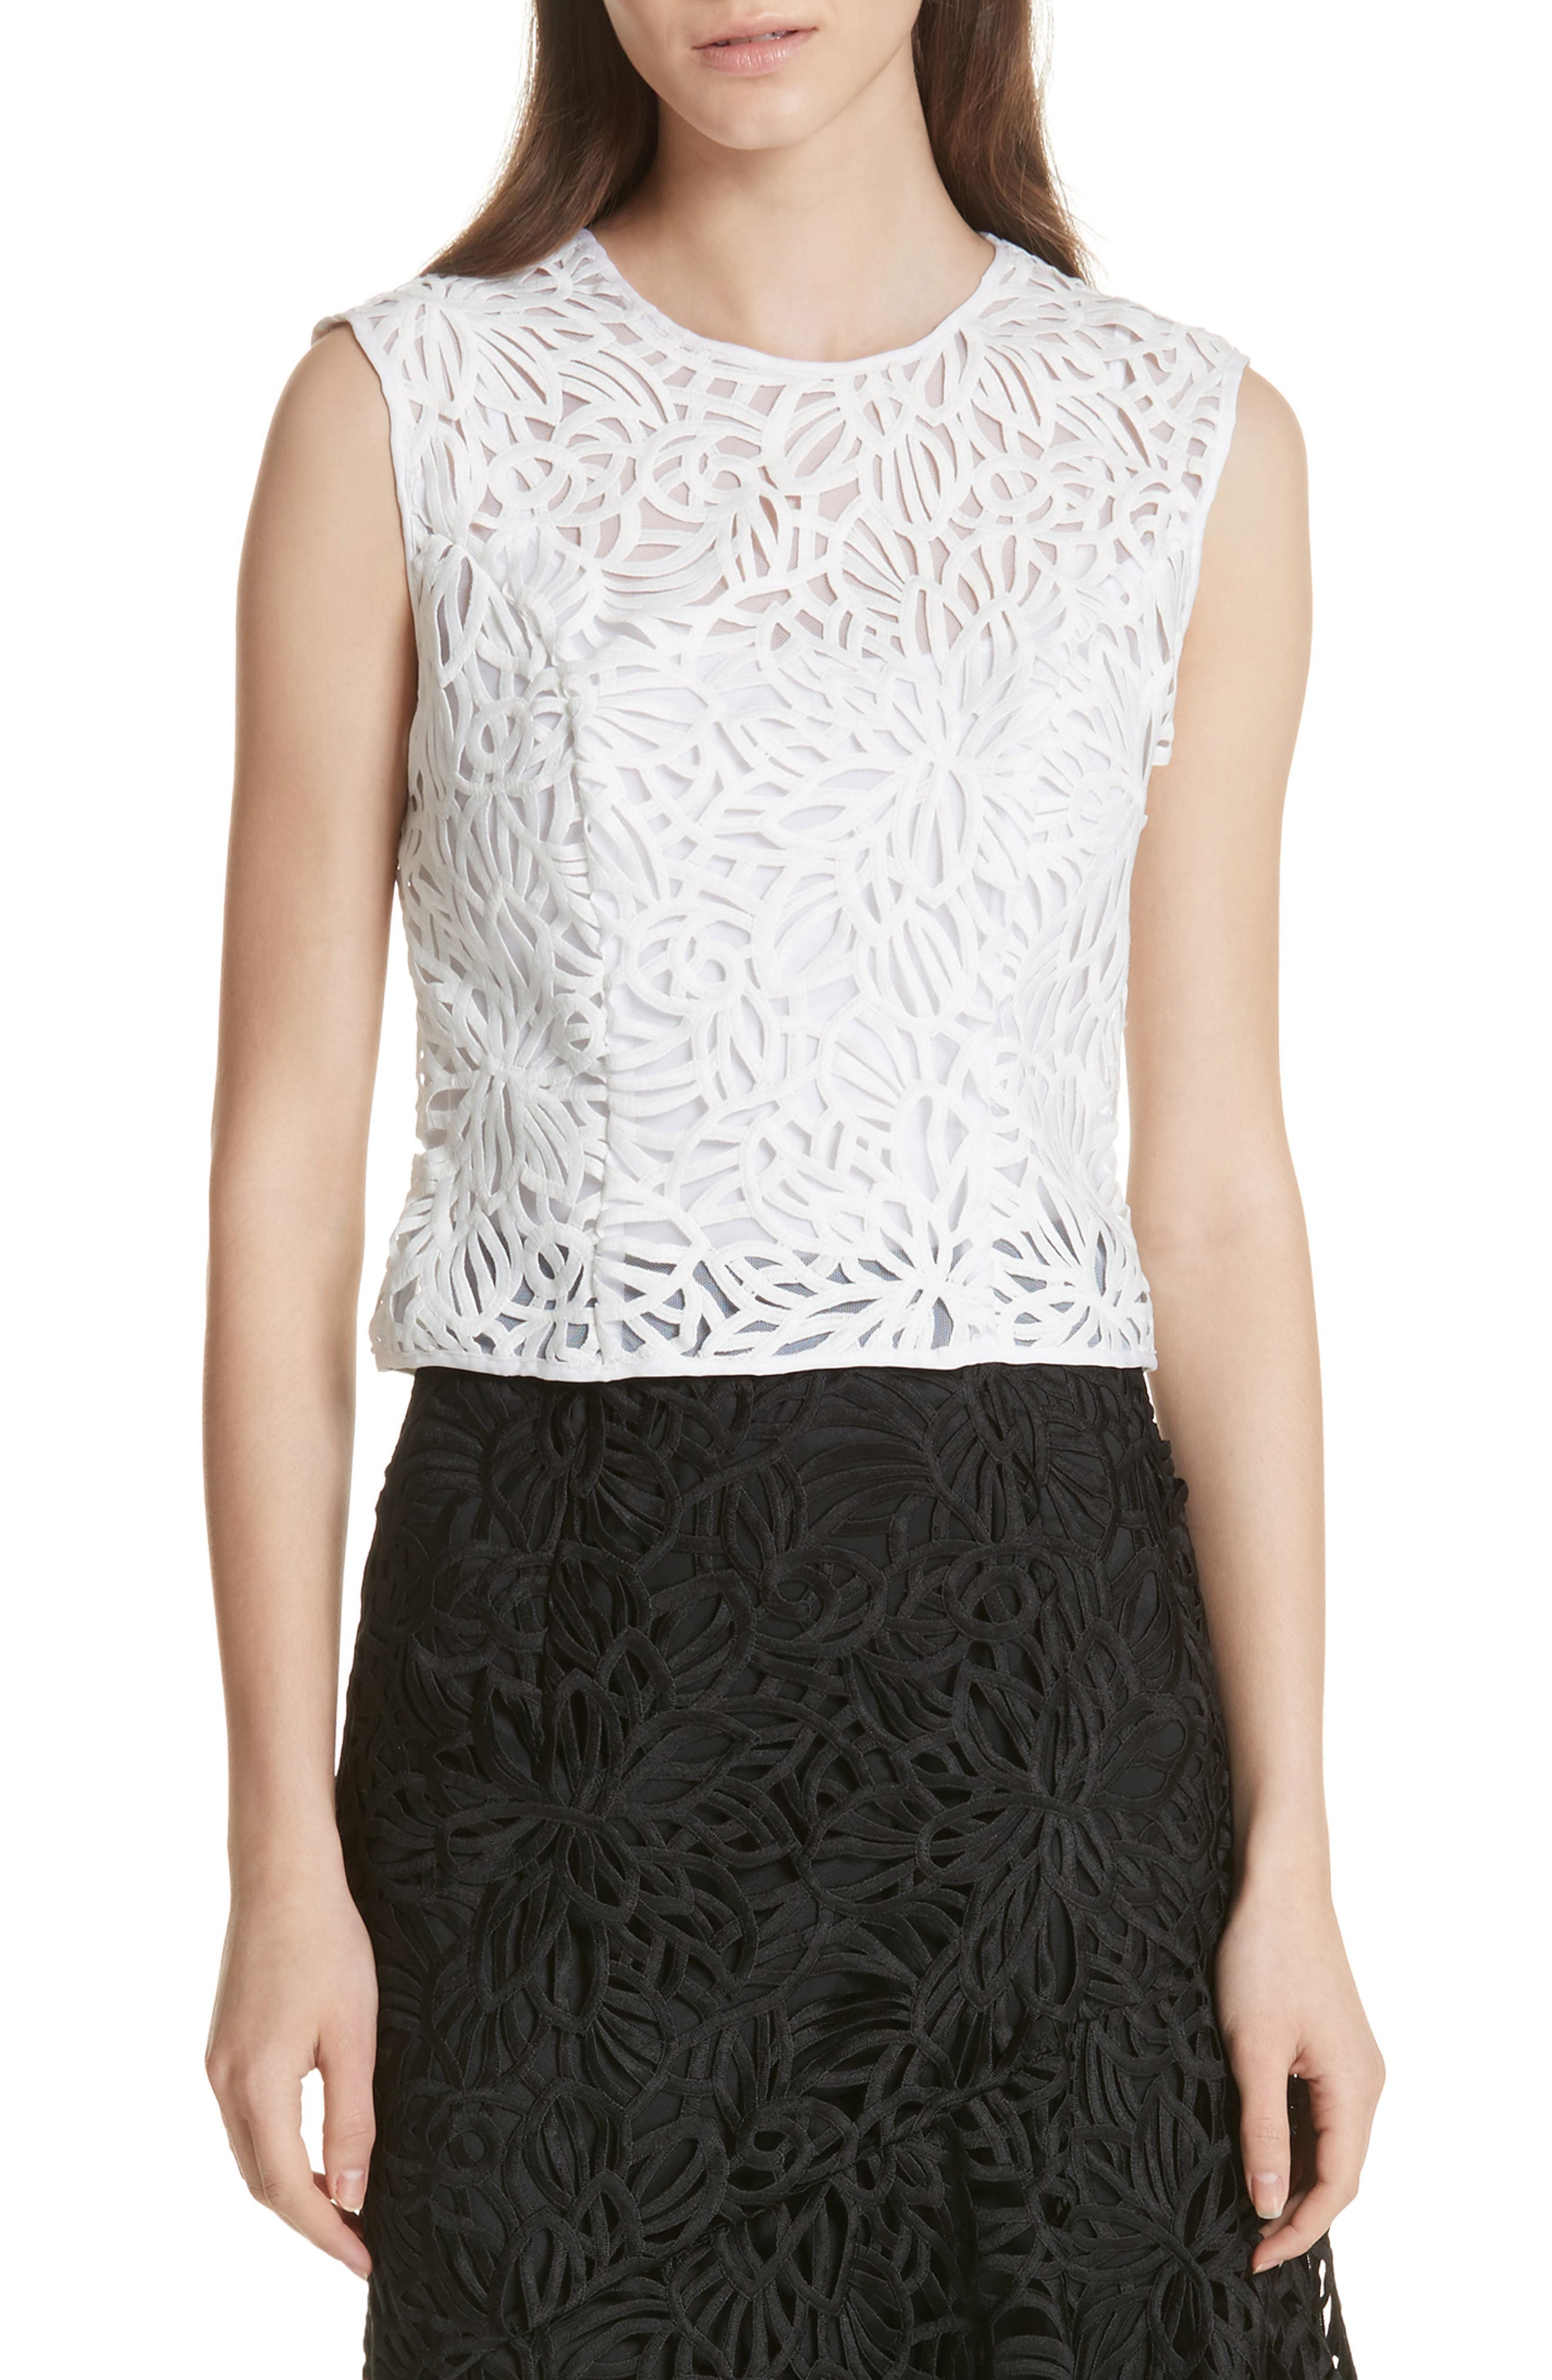 Irena Lace Top,                             Main thumbnail 1, color,                             White